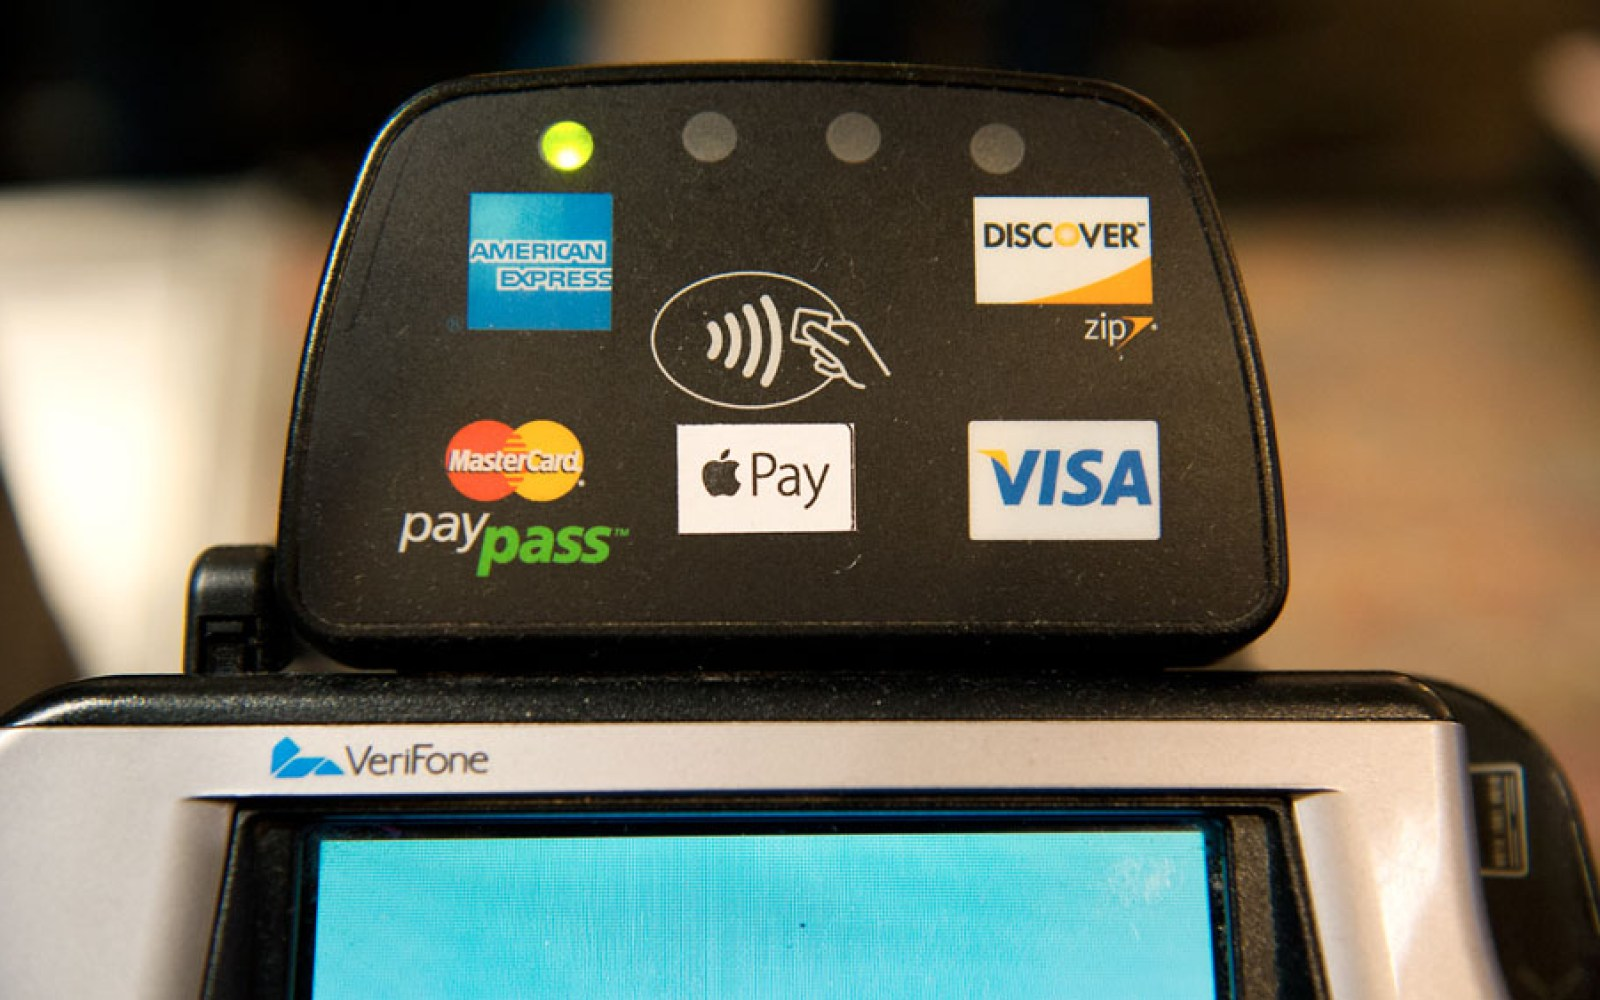 Apple Pay now supports 90% of US credit cards by transaction volume